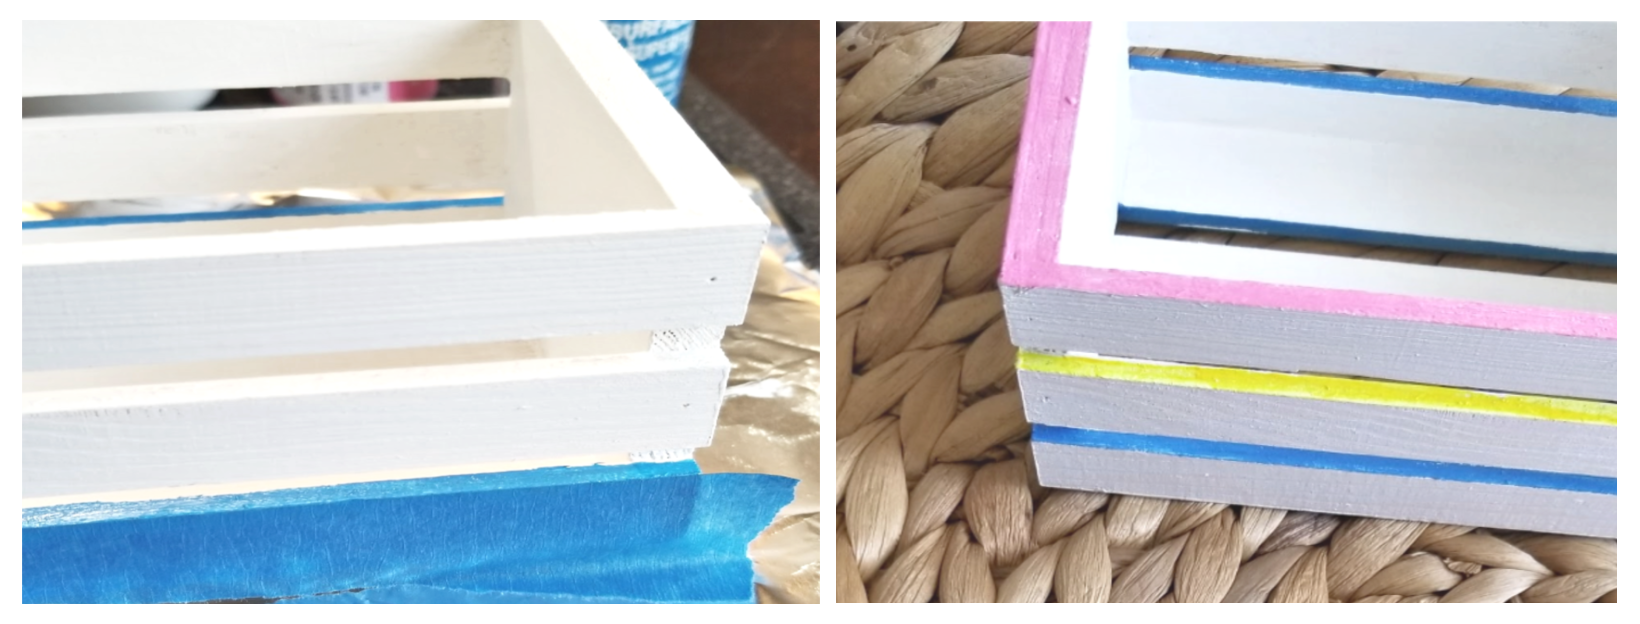 Add colored paint between wood slates on crate